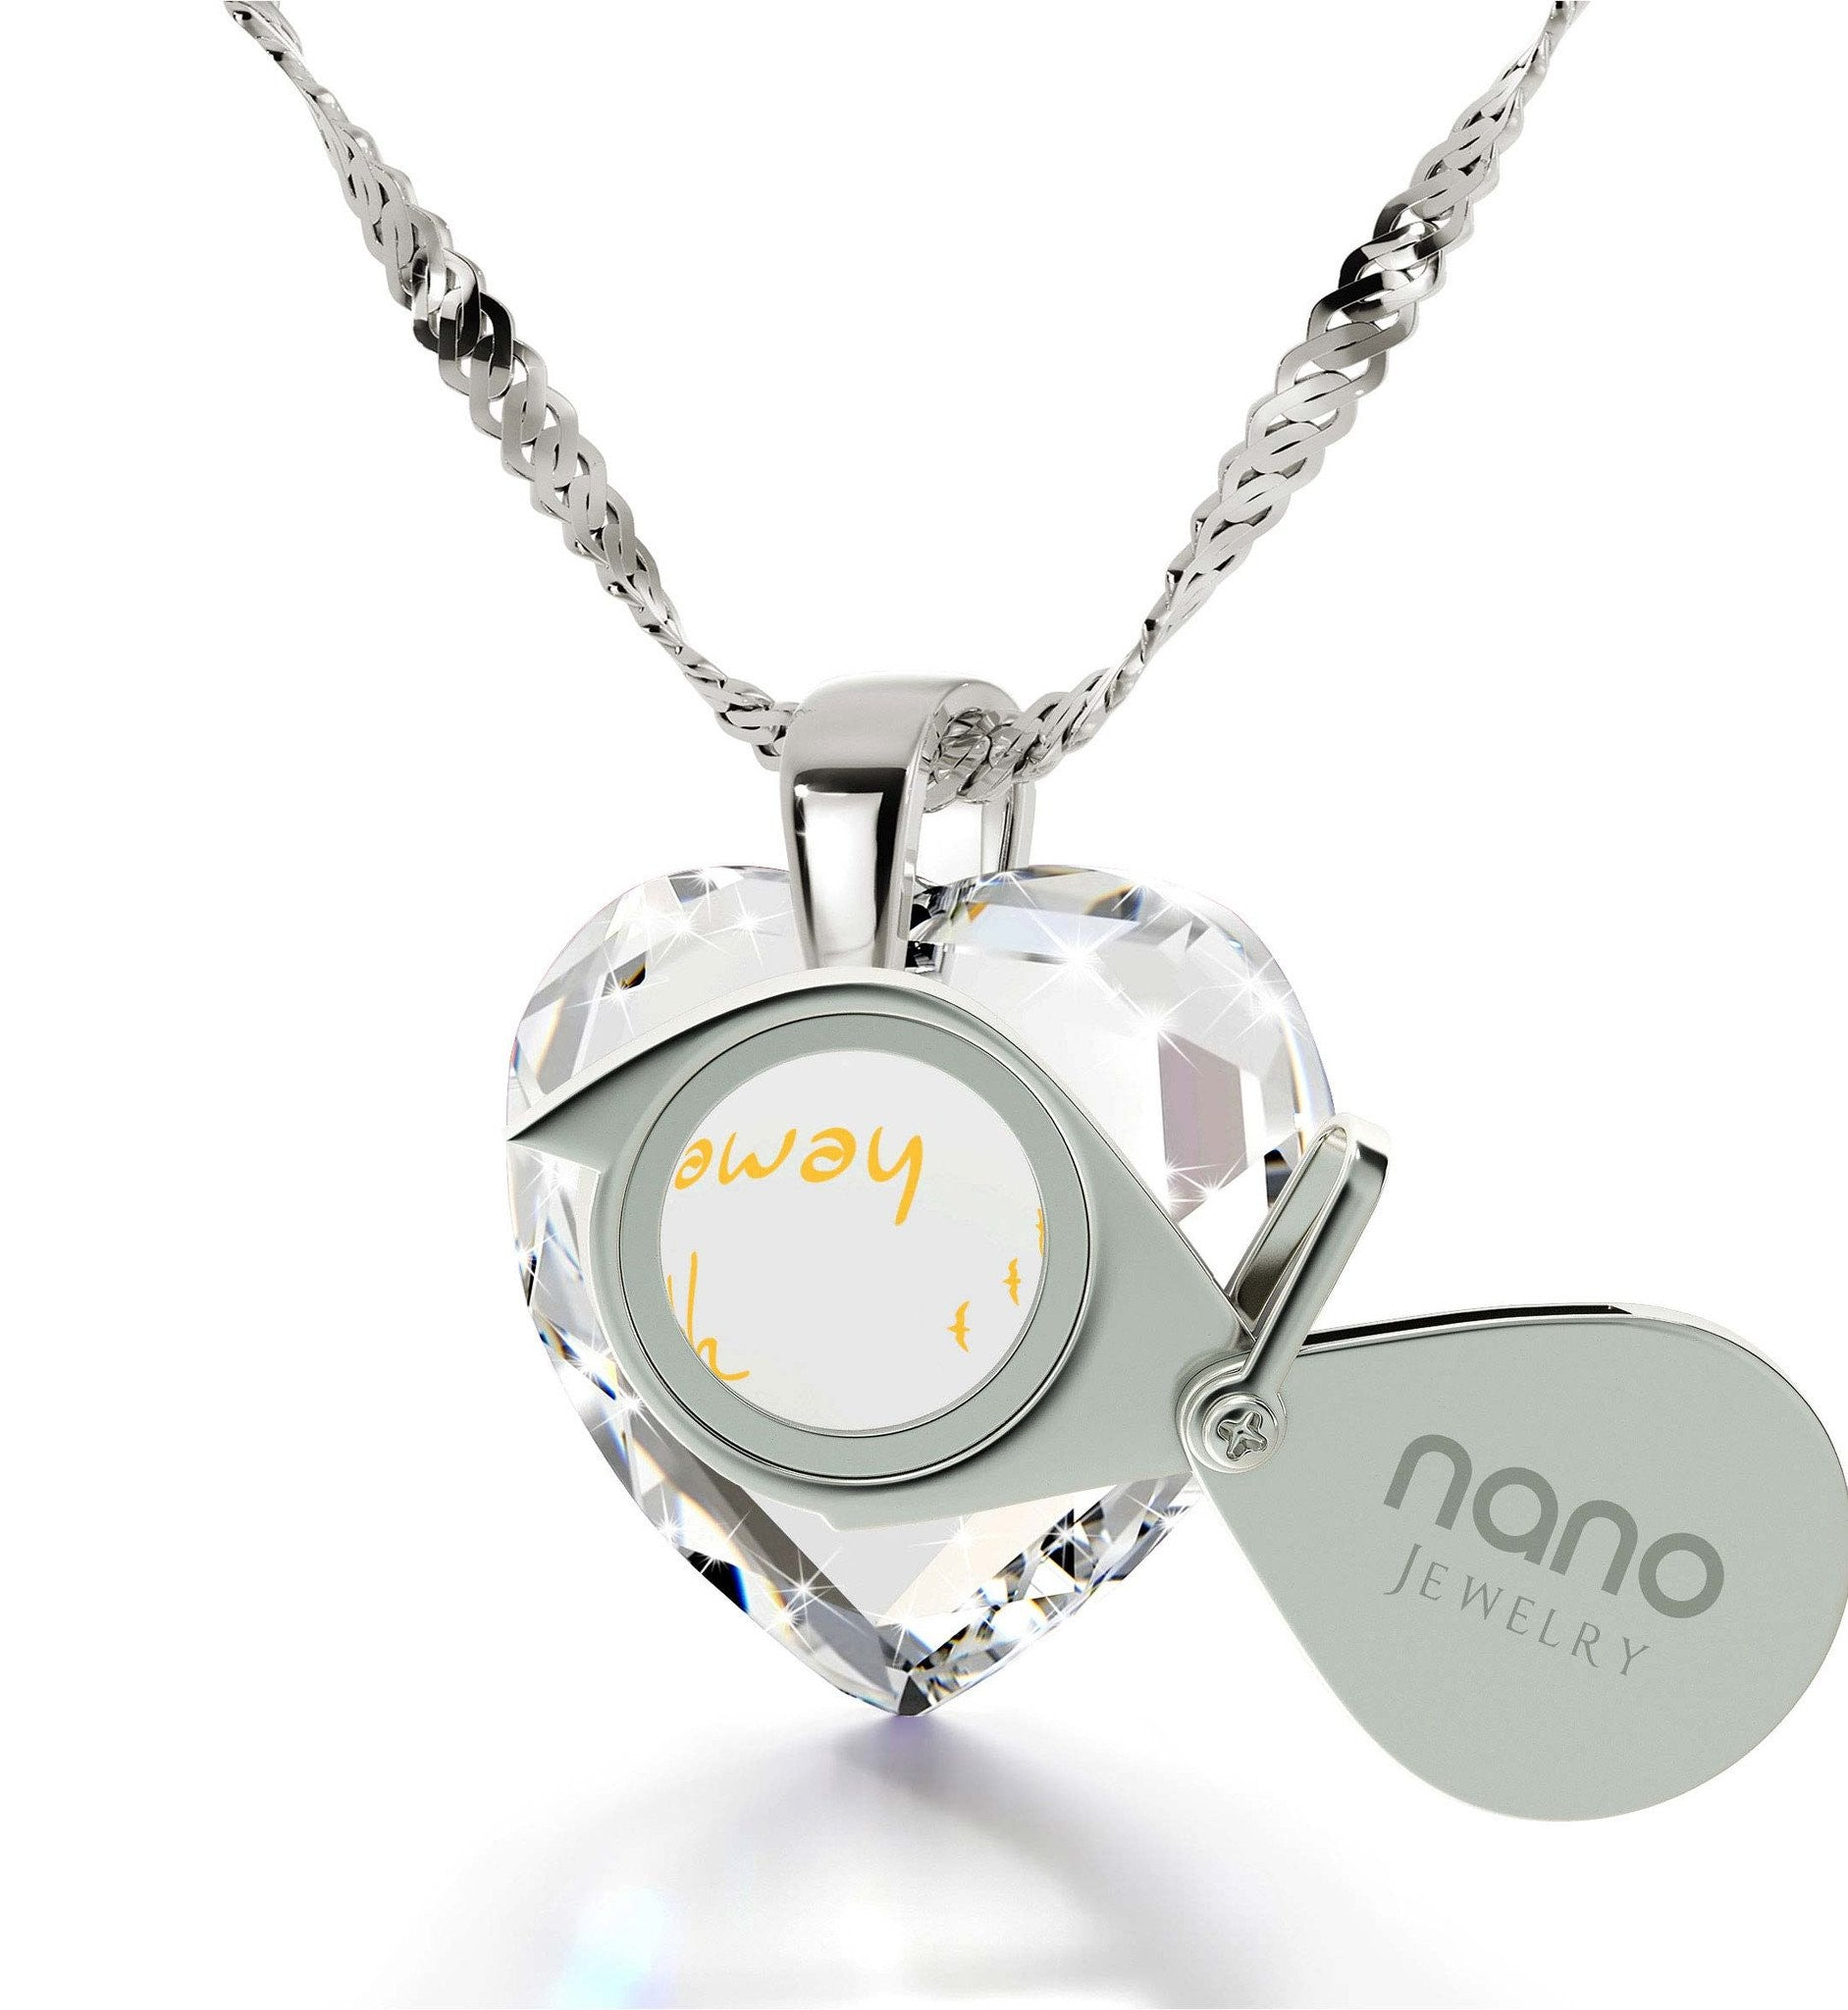 """What to Get Girlfriend for Birthday, 14k White Gold Chain with Engraved Pendant, Special Christmas Gifts for Her"""